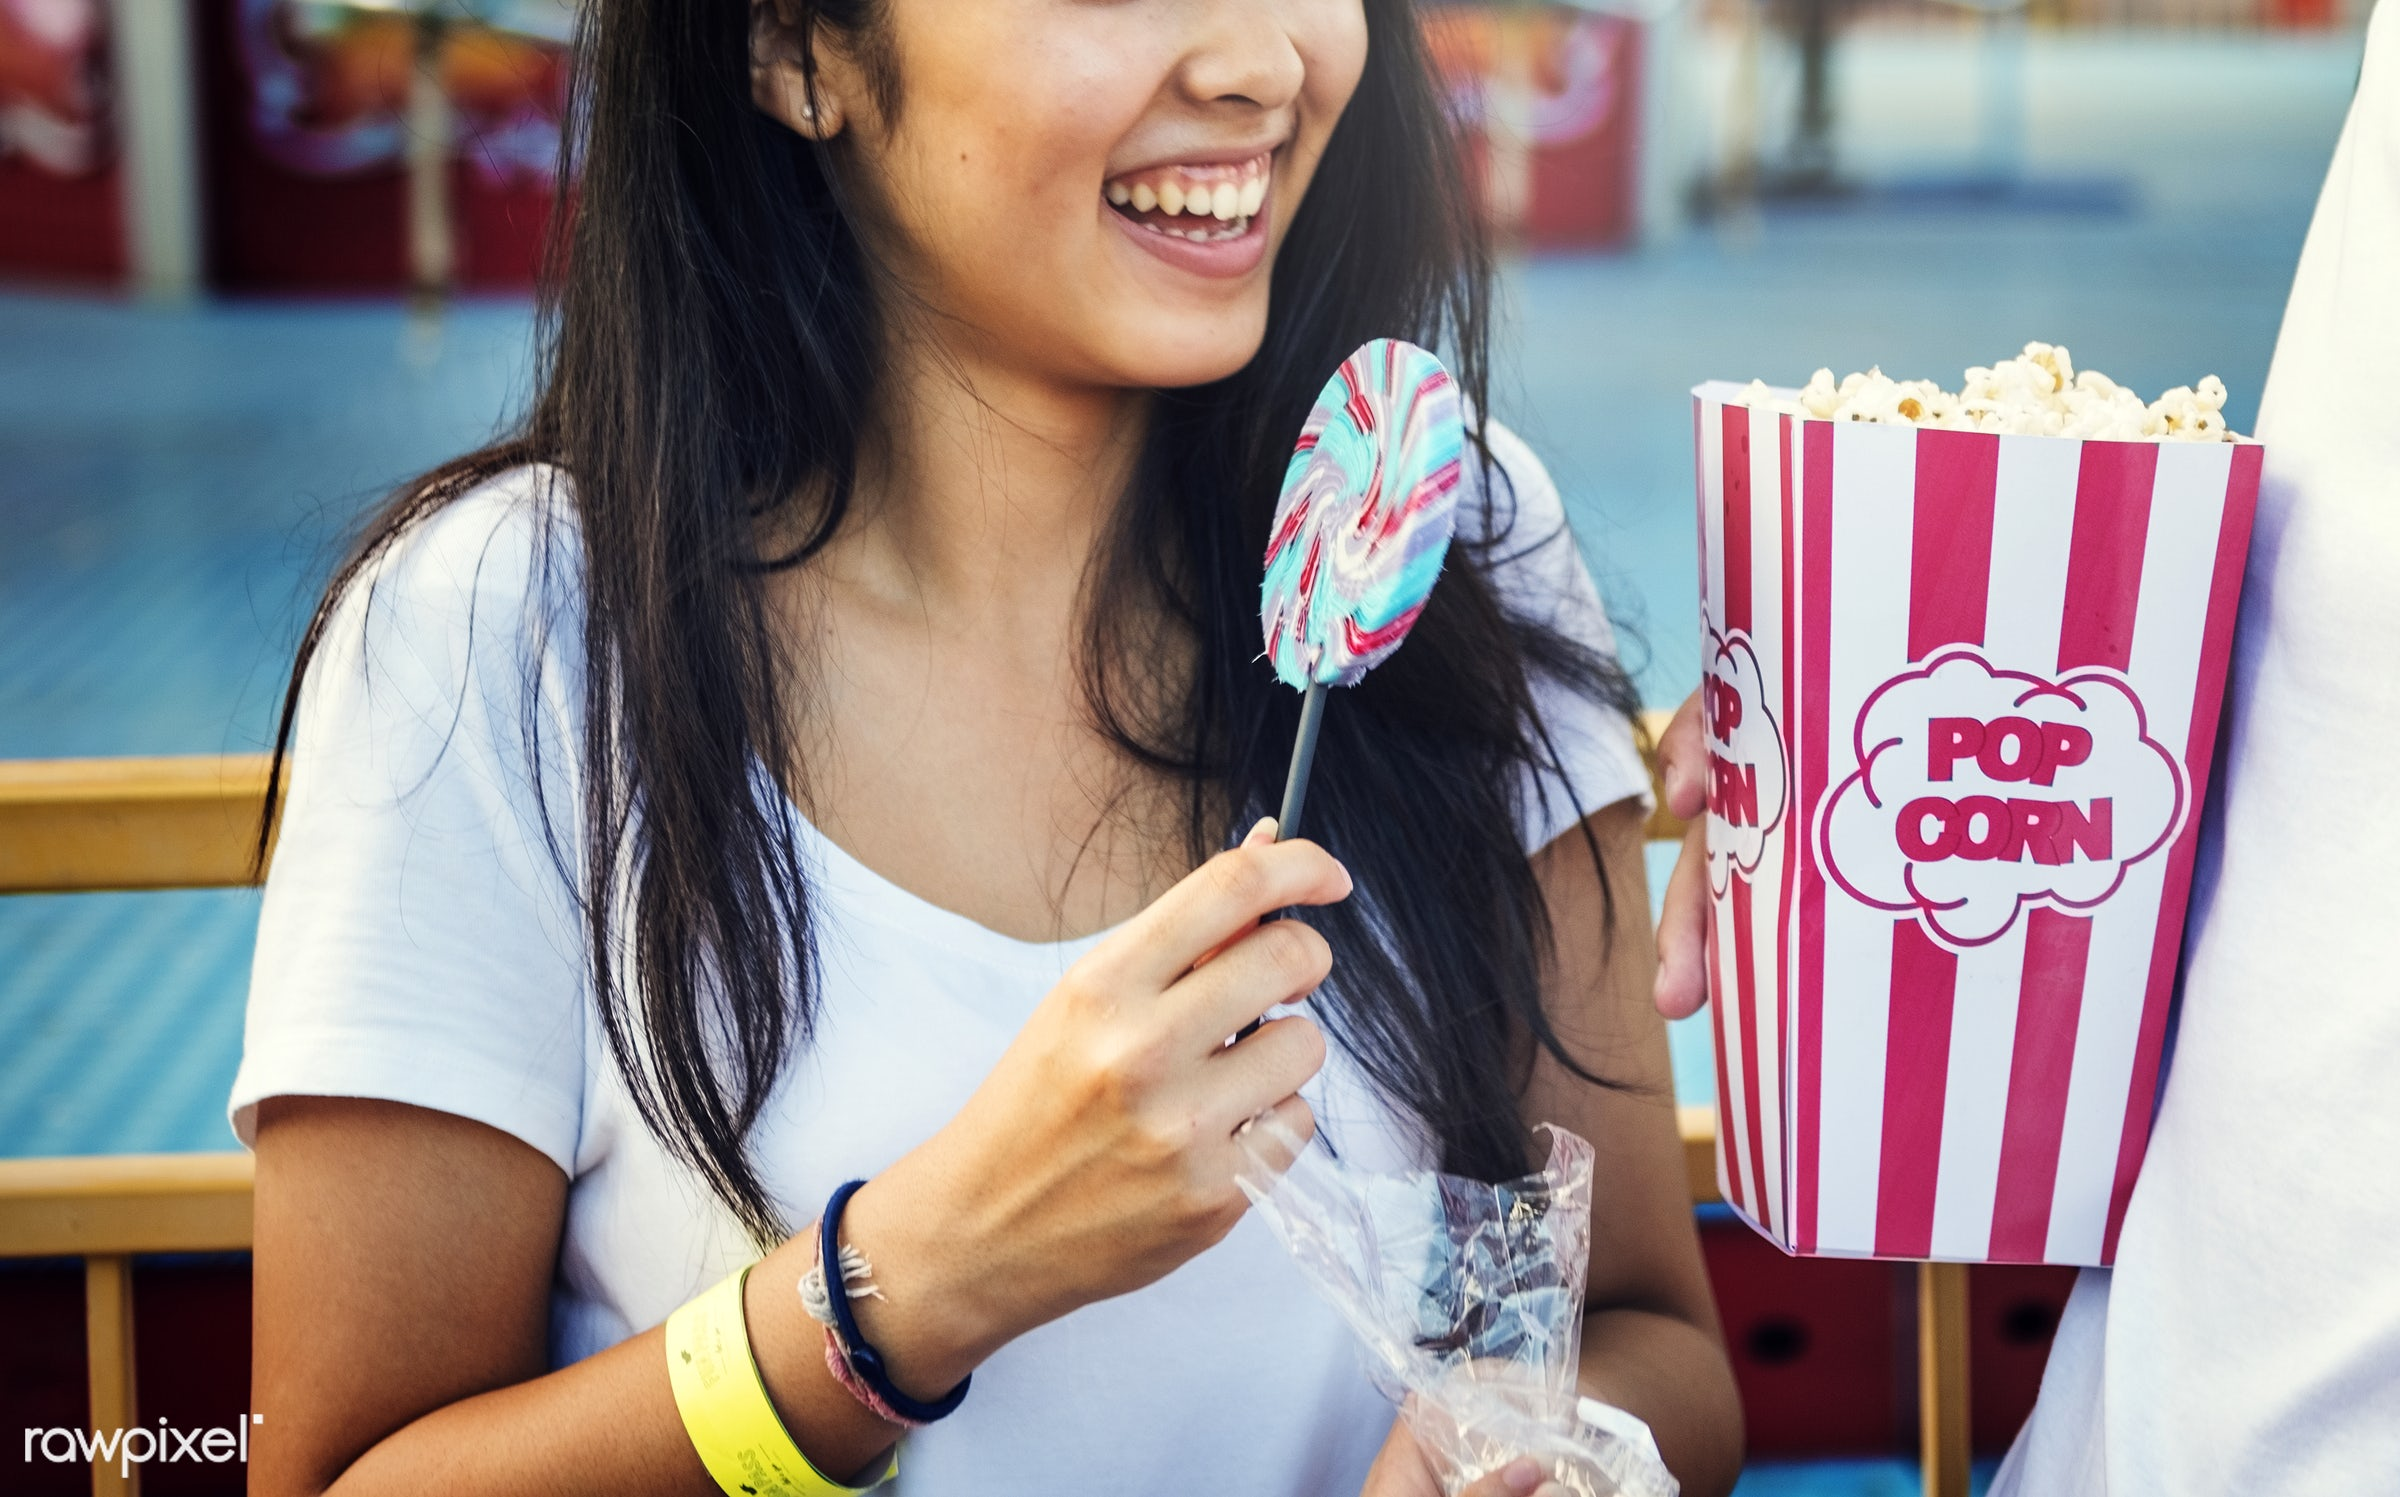 adorable, affectionate, amusement, amusement park, asian, beautiful, black hair, boyfriend, bright, candid, care, carnival,...